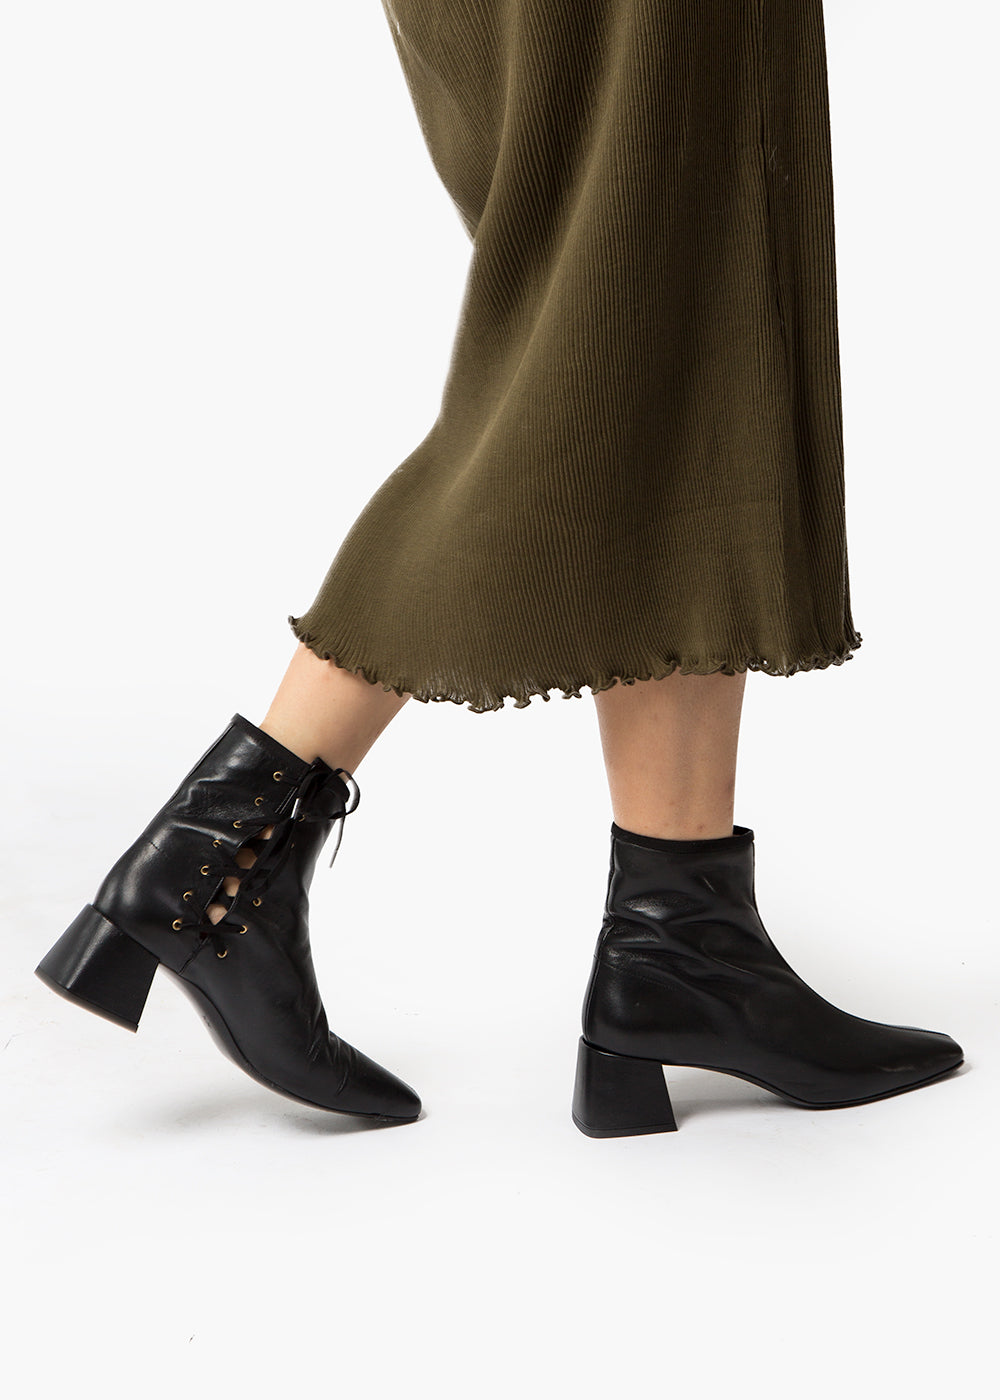 Suzanne Rae Black Lady Boots — New Classics Studios